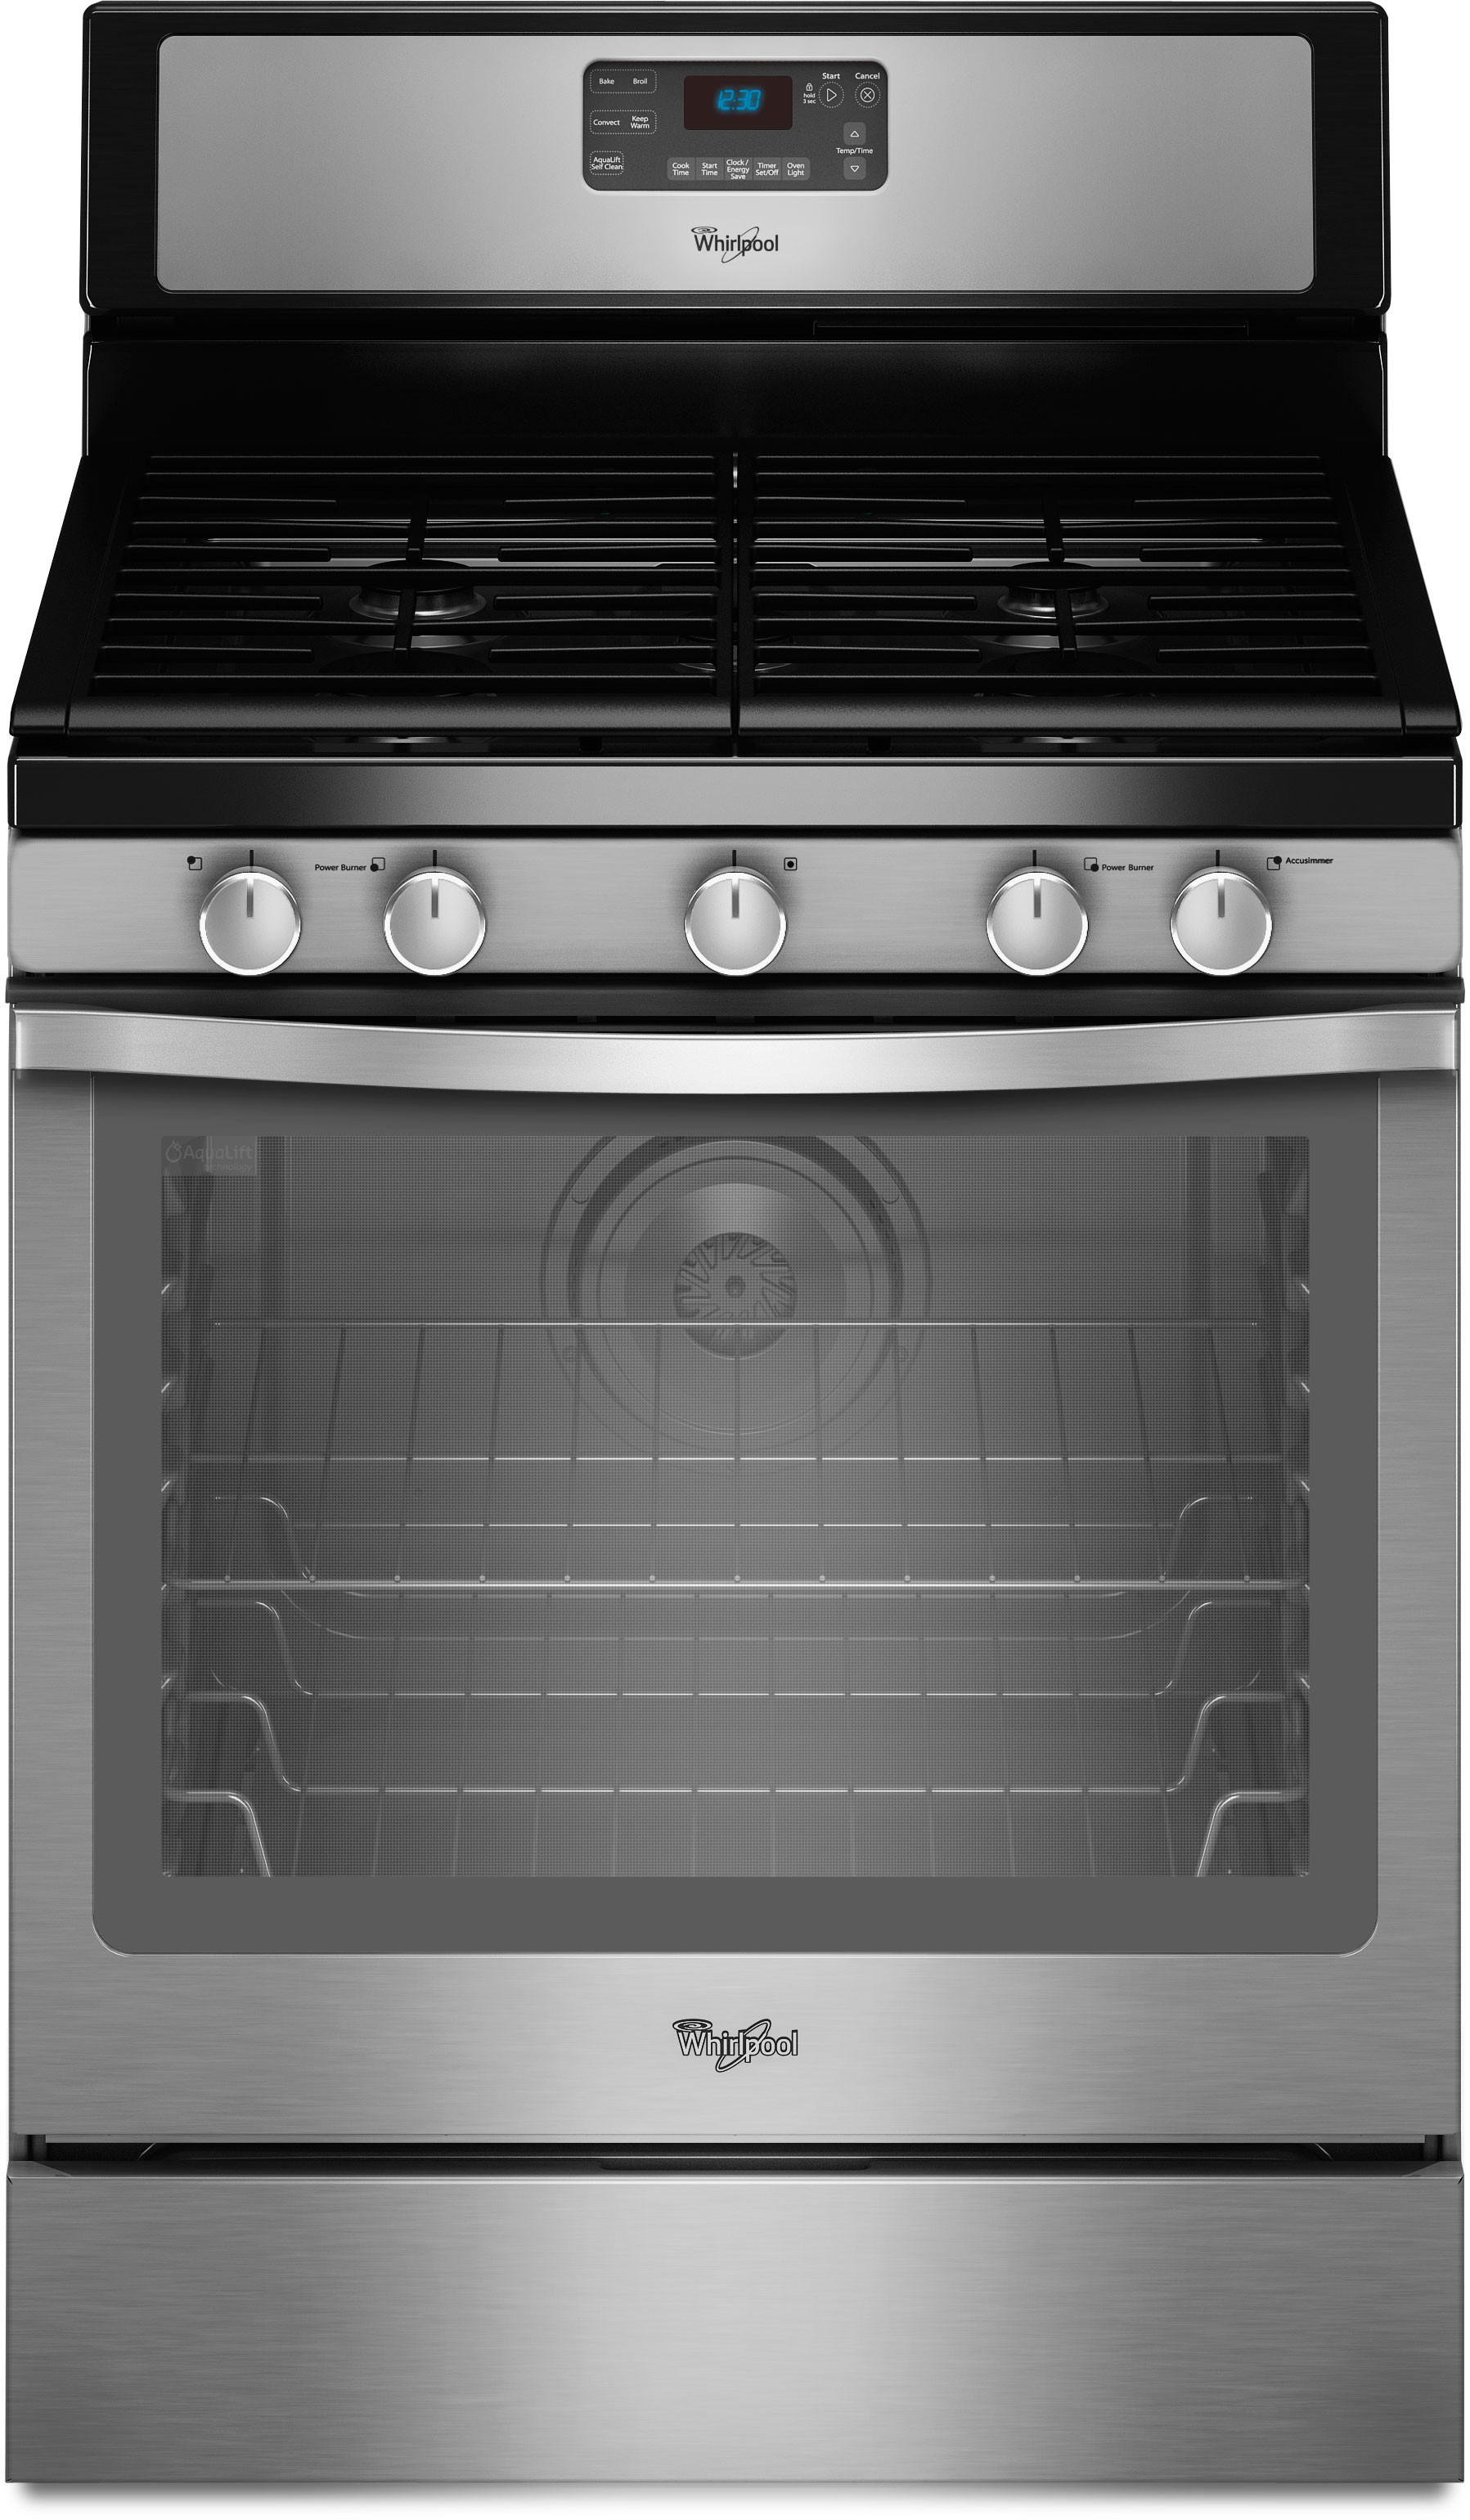 Countertop Warming Drawer Whirlpool Wfg540h0as 30 Inch Freestanding Gas Range With 4